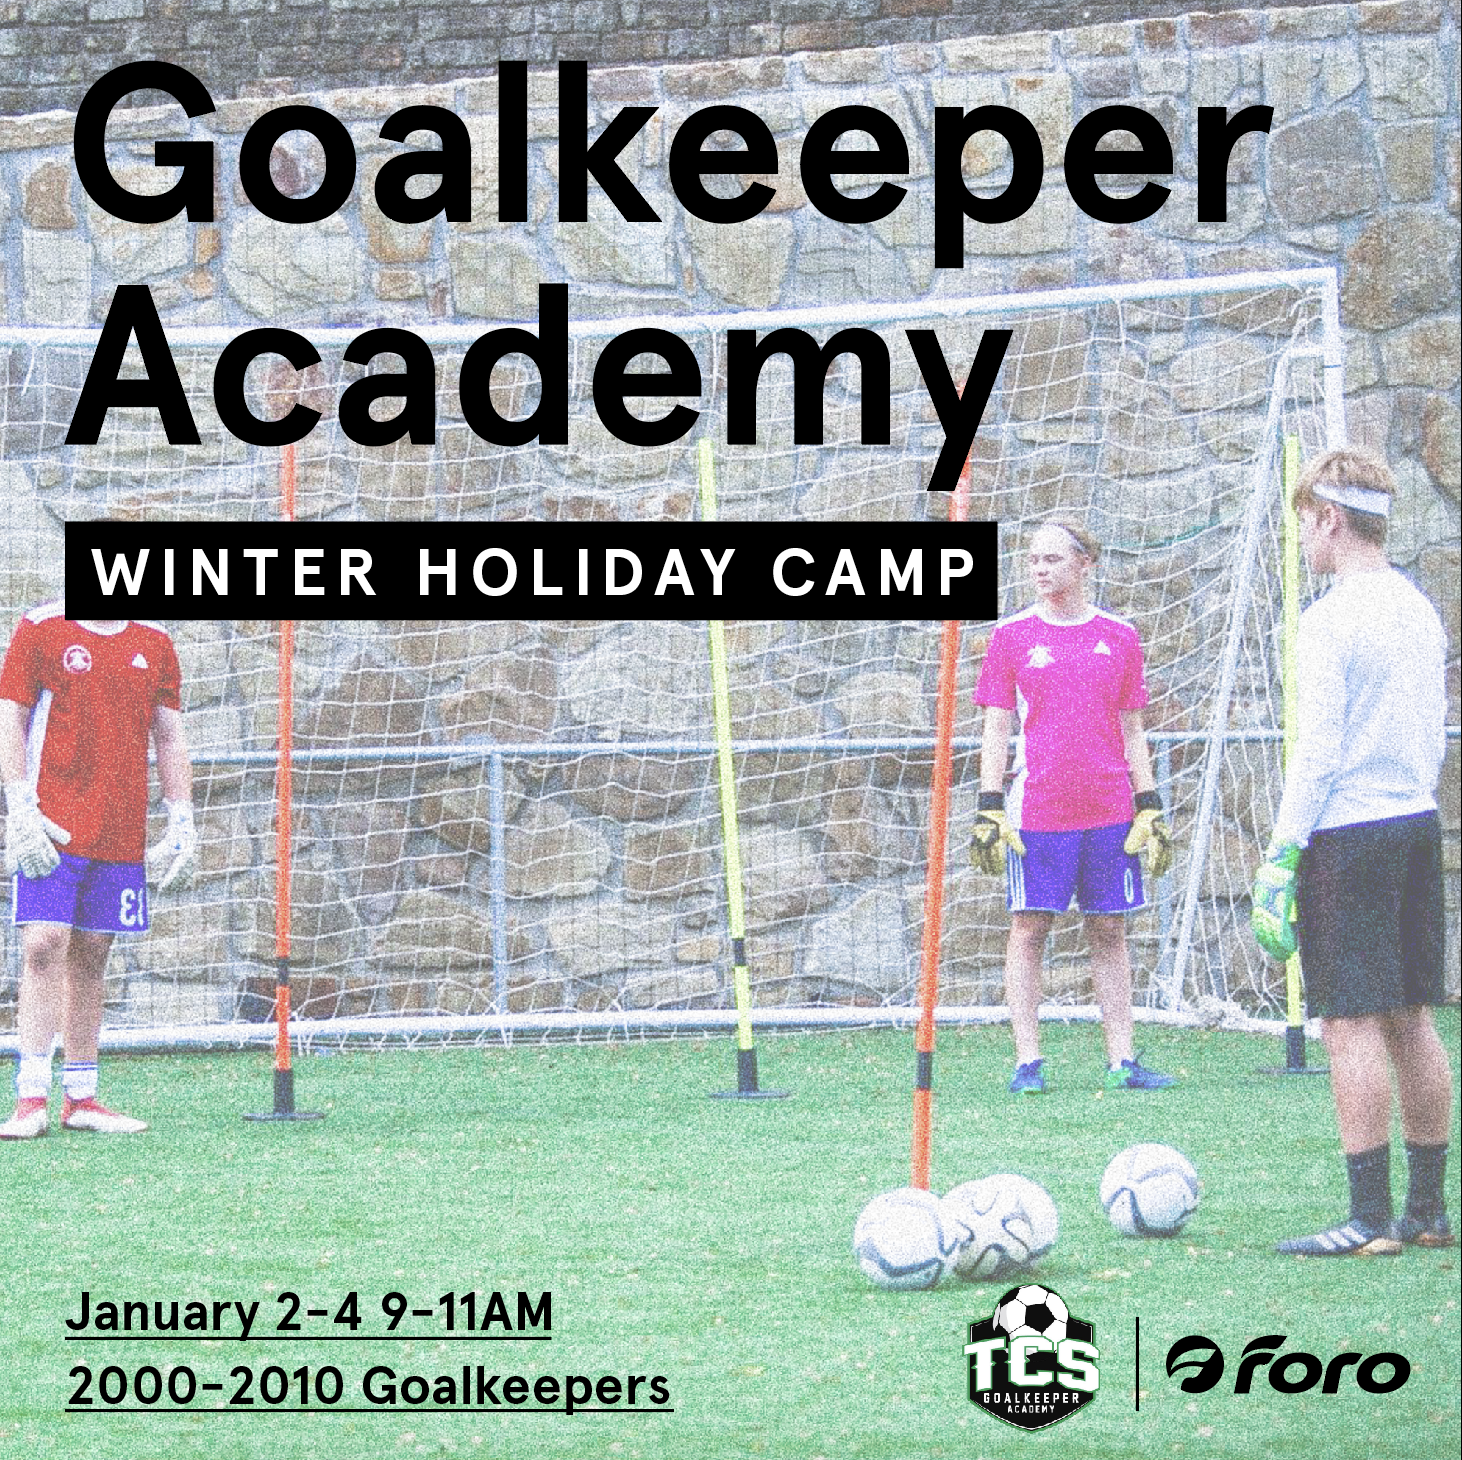 TCS Goalkeeper Academy Winter Holiday Camp - When:January 2-4 / 9-11AMWhat:3-day goalkeeper camp for 2000-2010 goalkeepers. The camp is aimed at players that currently play goalkeeper and enjoy playing the position. Players will be divided into groups by abilities and age.Register/Contact:topcornergoalkeepers@gmail.com / (214) 448-3381 / @topcornergoalkeeperacademyLimited Spaces Available